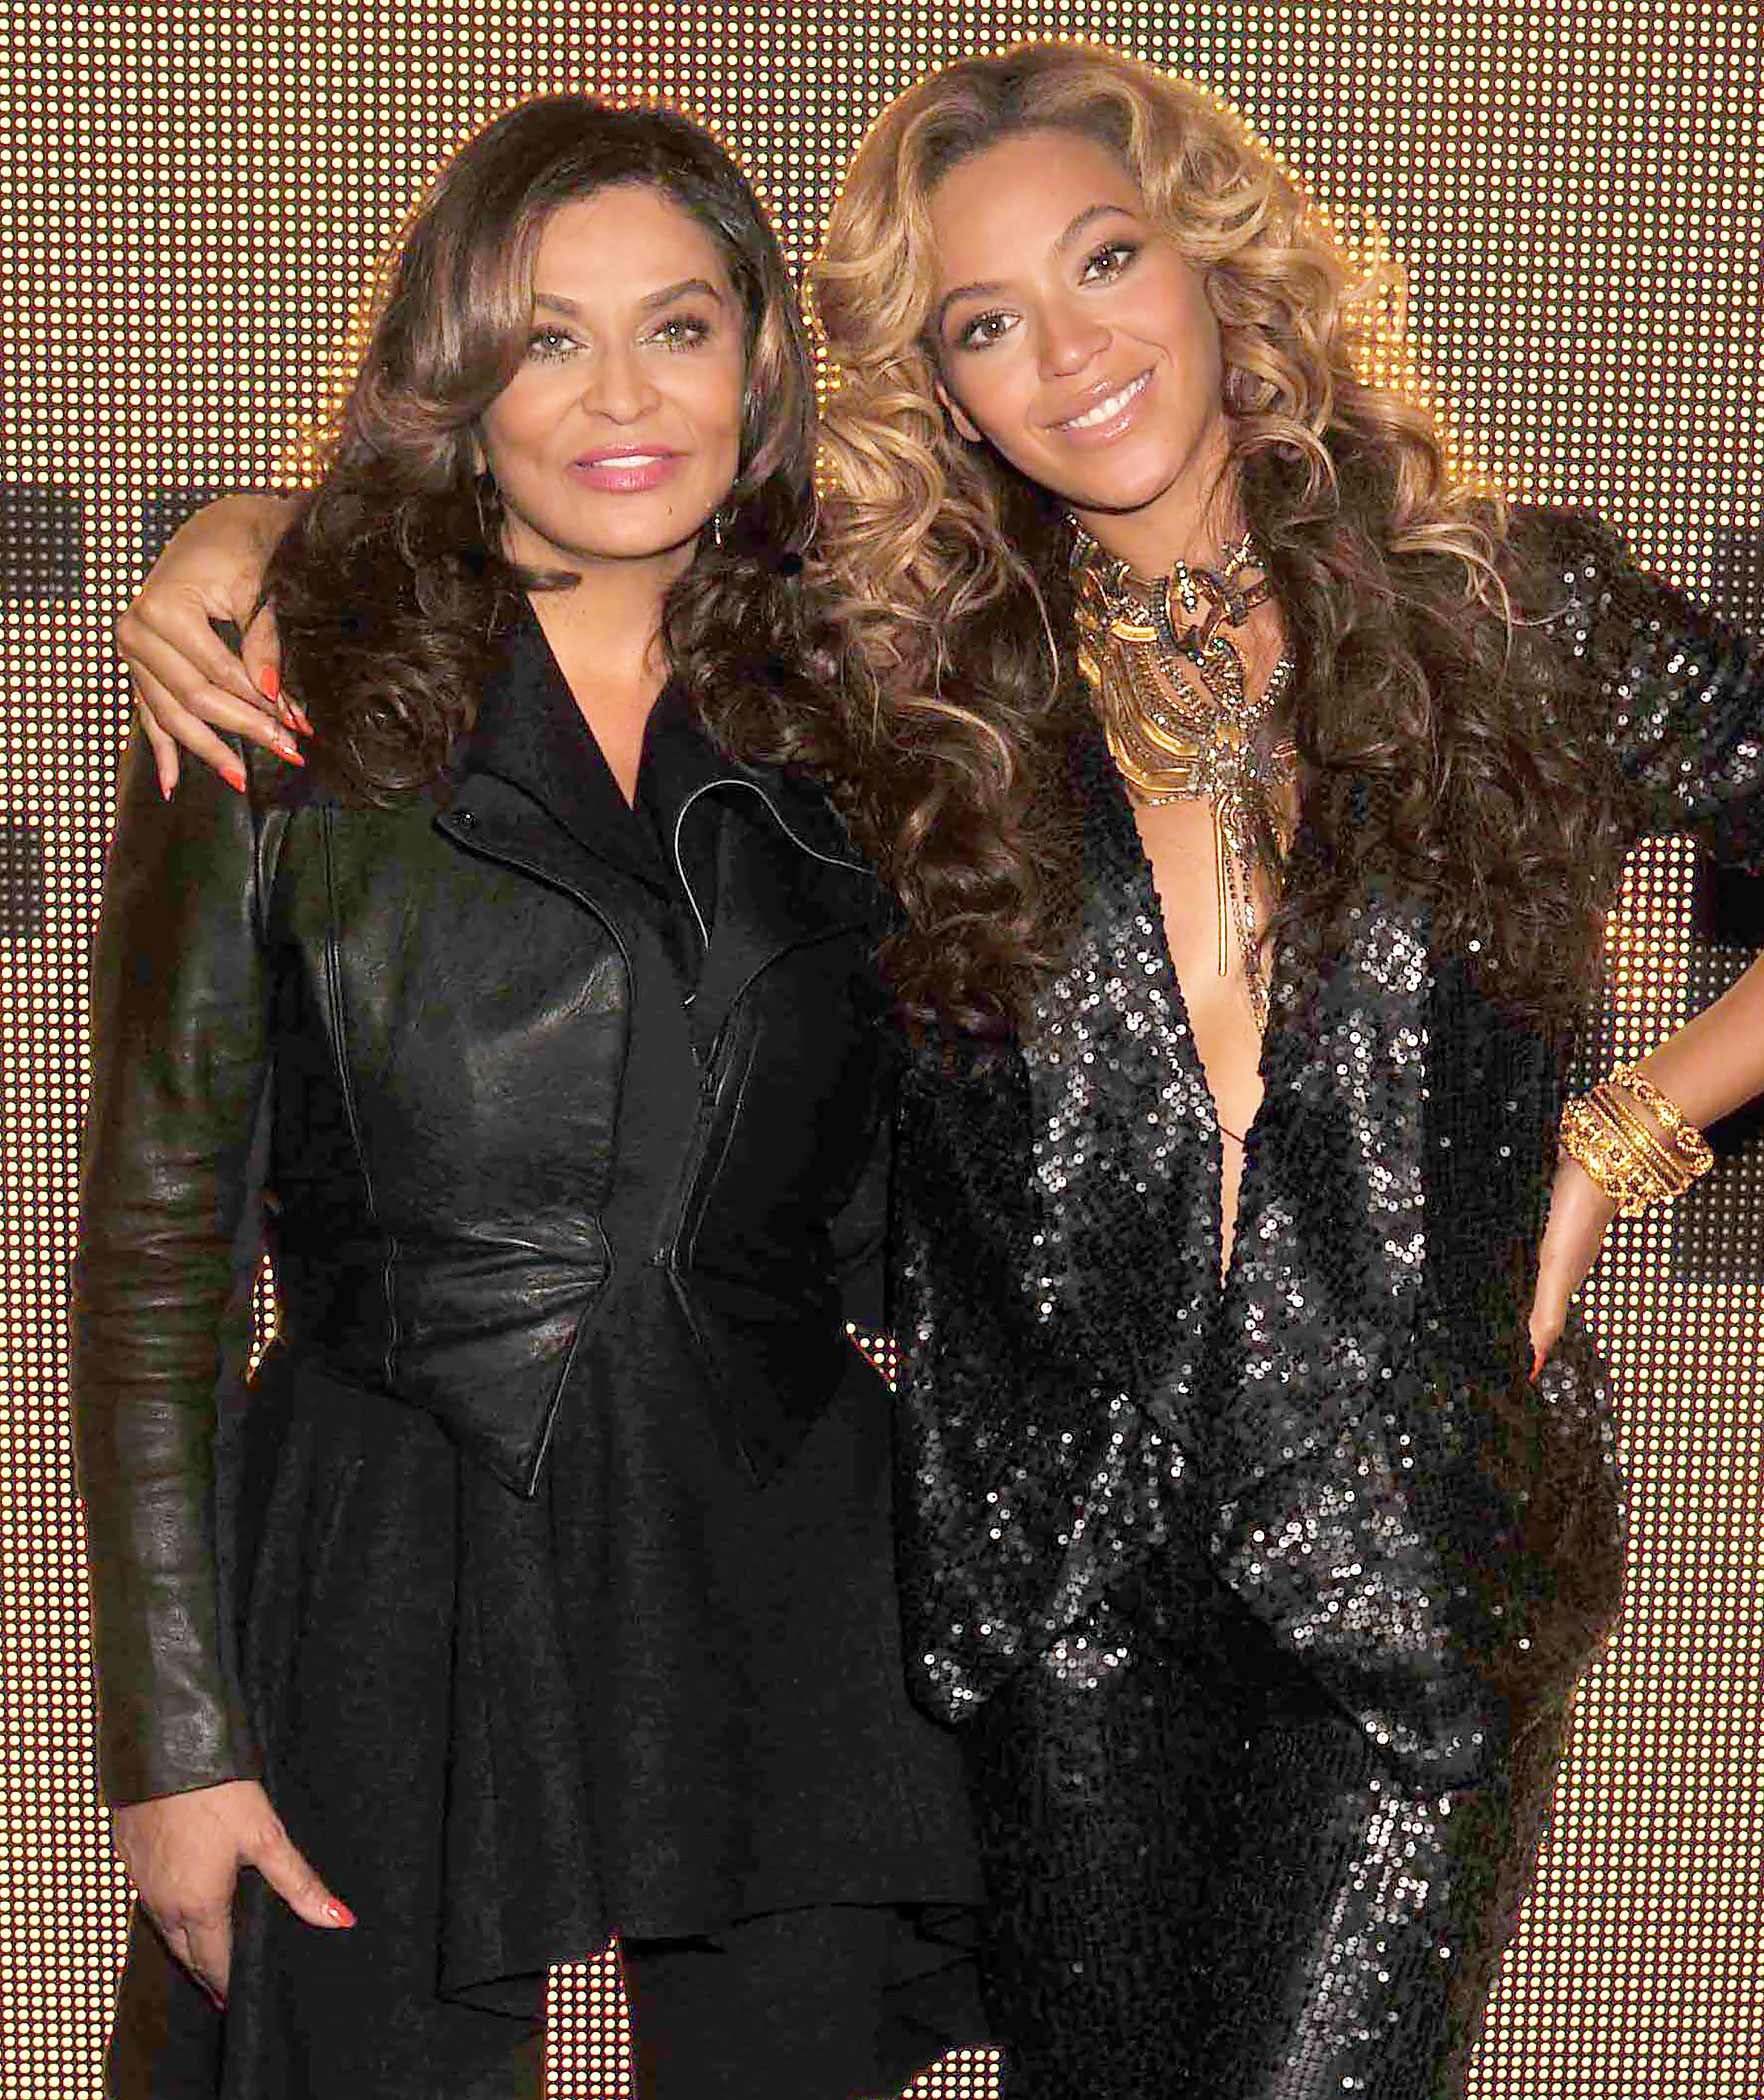 Tina Knowles Reacts to Claims That Beyonce Struggles With Social Anxiety